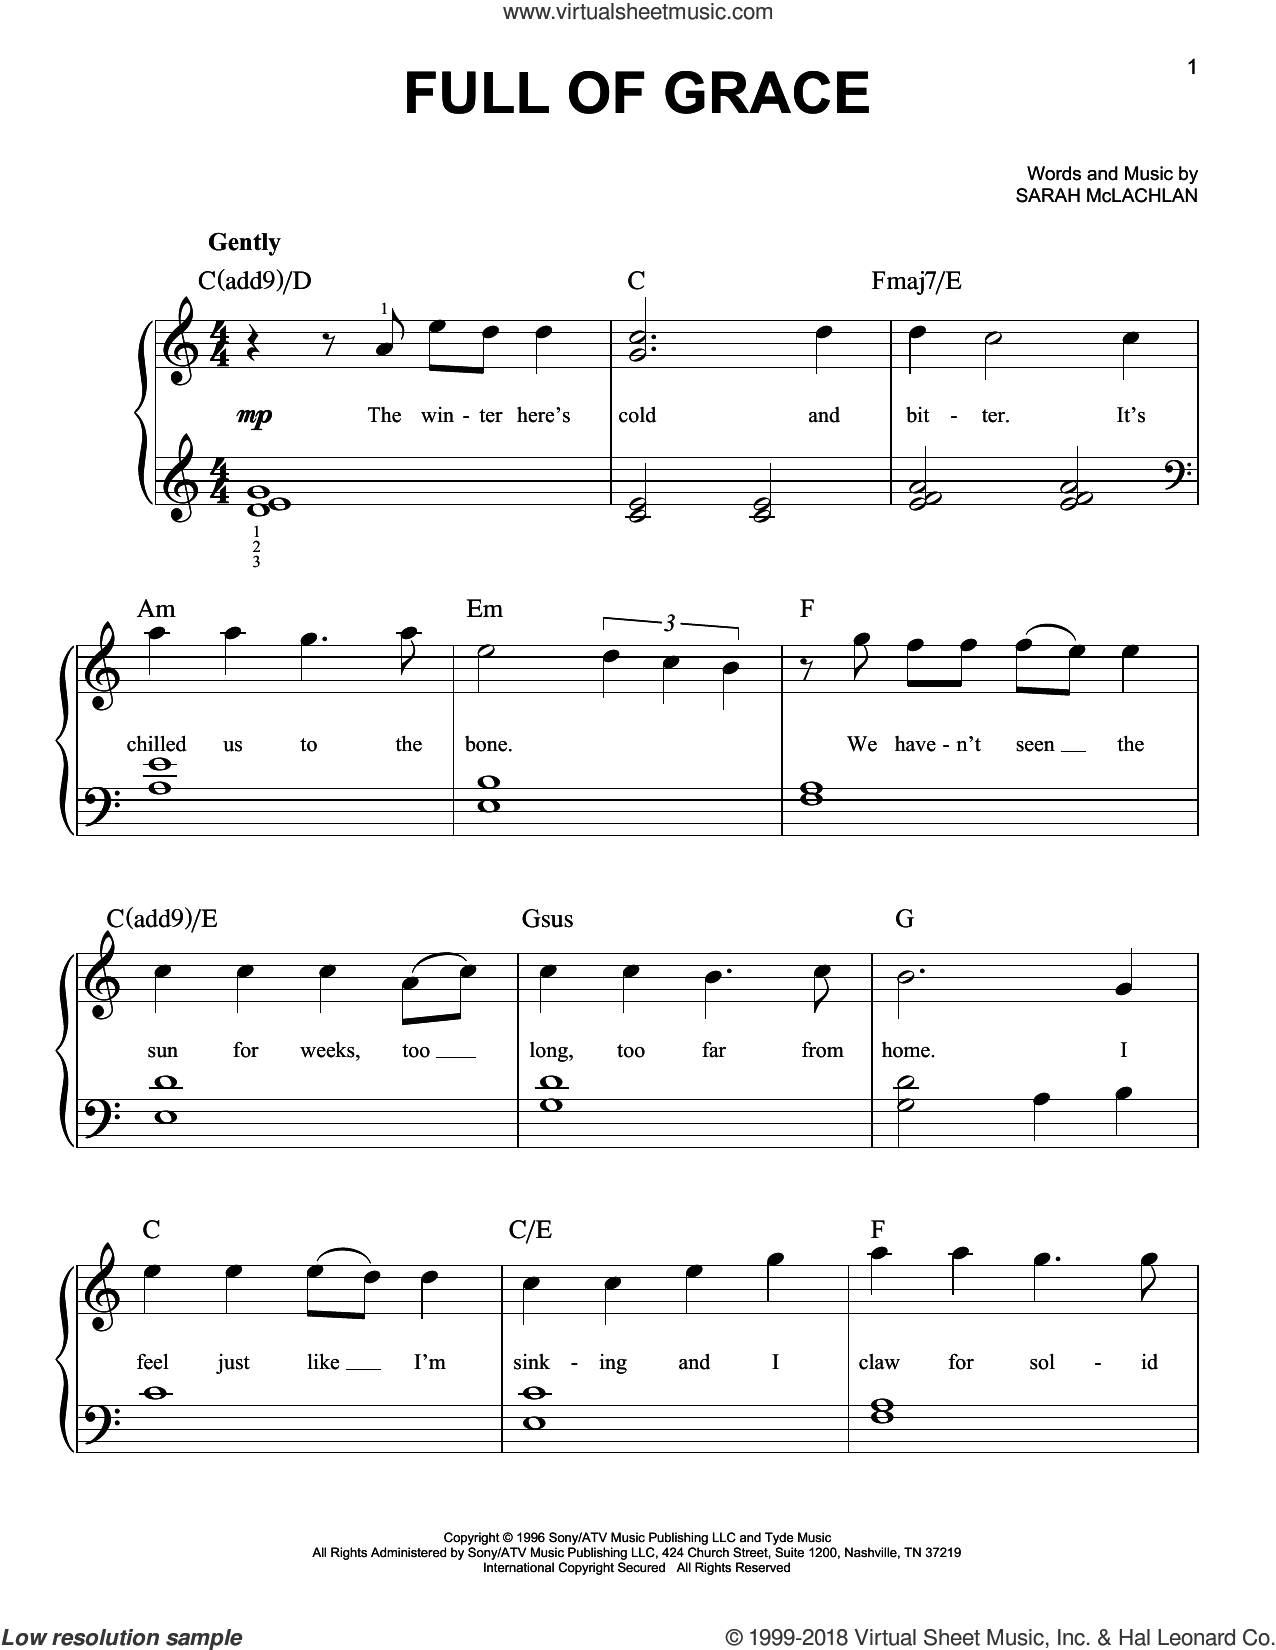 Full Of Grace sheet music for piano solo by Sarah McLachlan, easy skill level